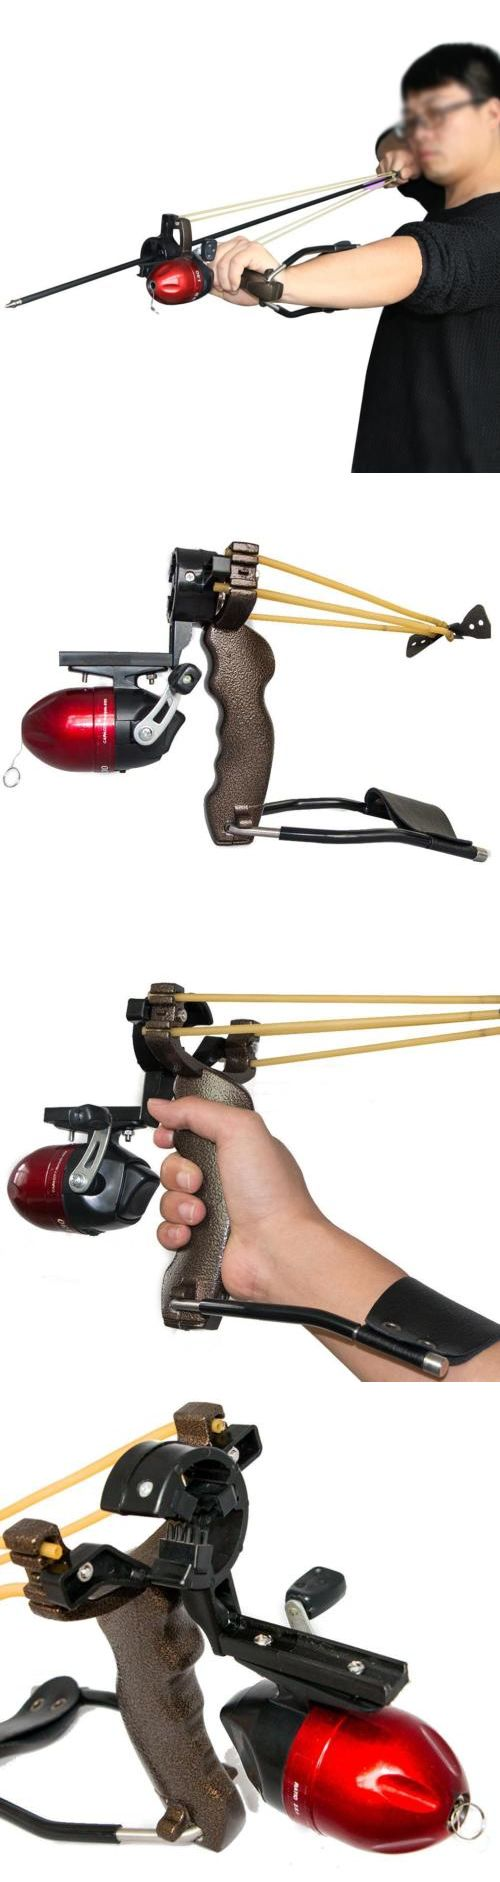 Slingshots 117141: New Freshwater Fishing Reels Slingshot Bow Arrow Rest Catapult Hunting Slingbow BUY IT NOW ONLY: $51.84